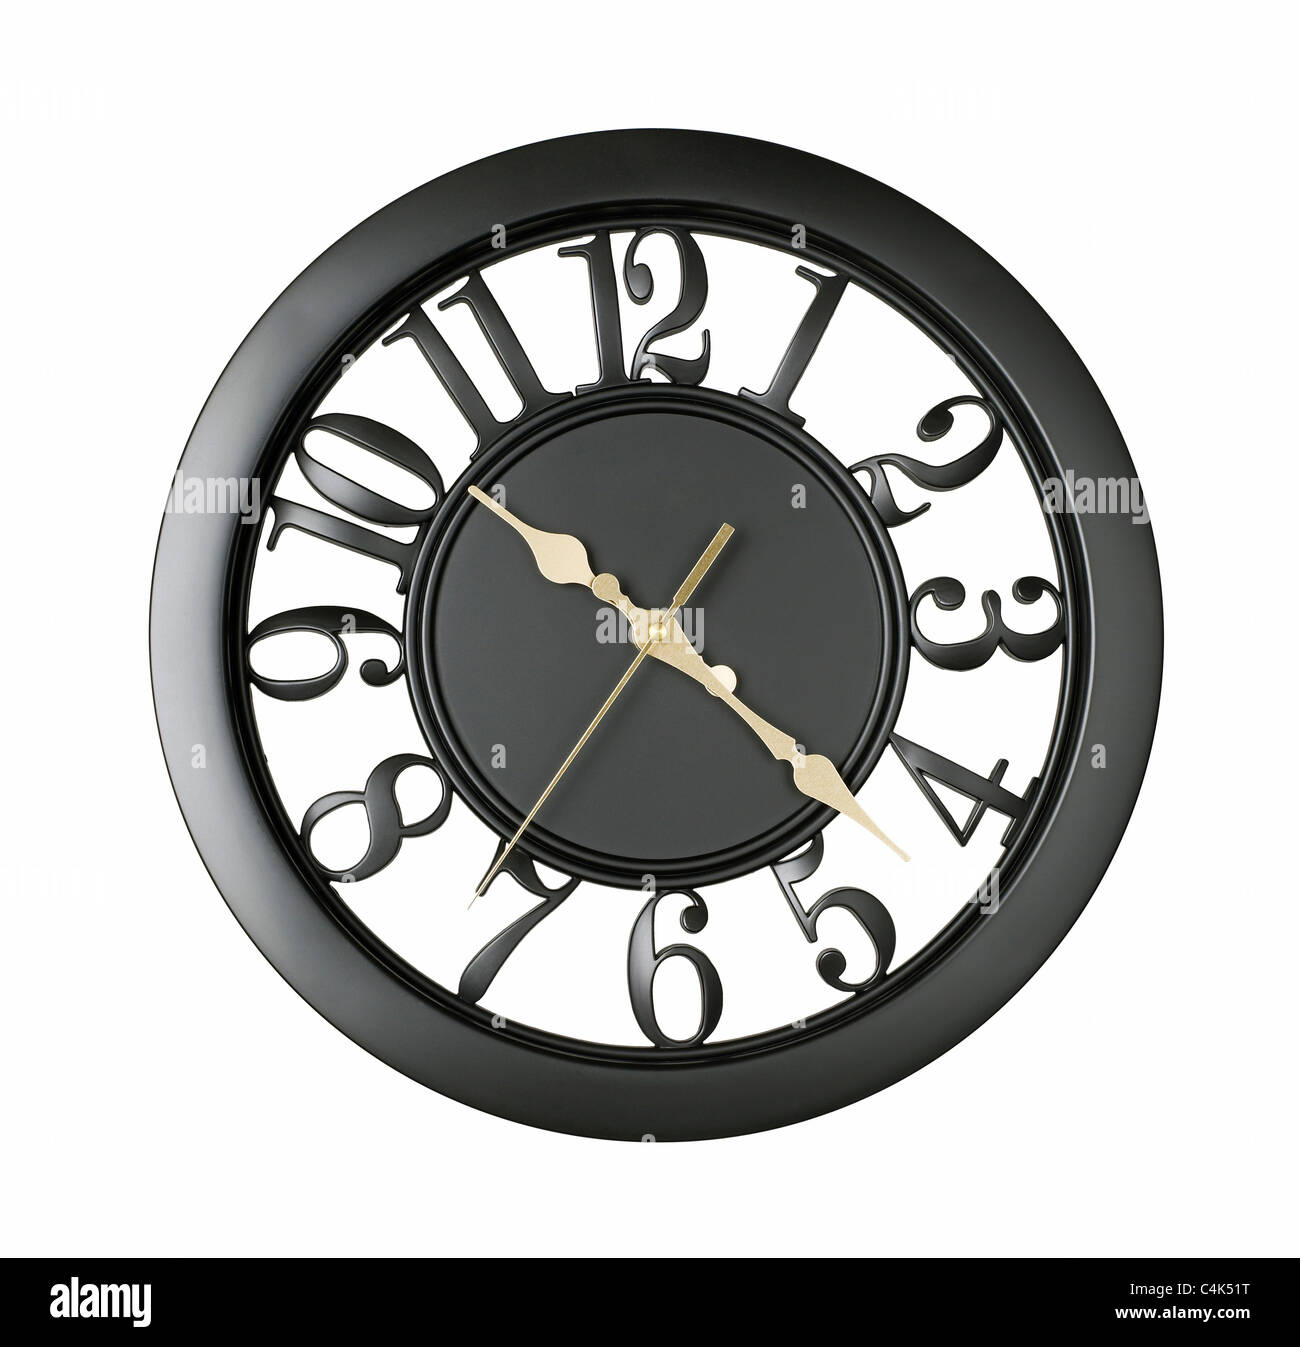 Black Wall Clock Black Wall Clock Stock Photo 37300420 Alamy